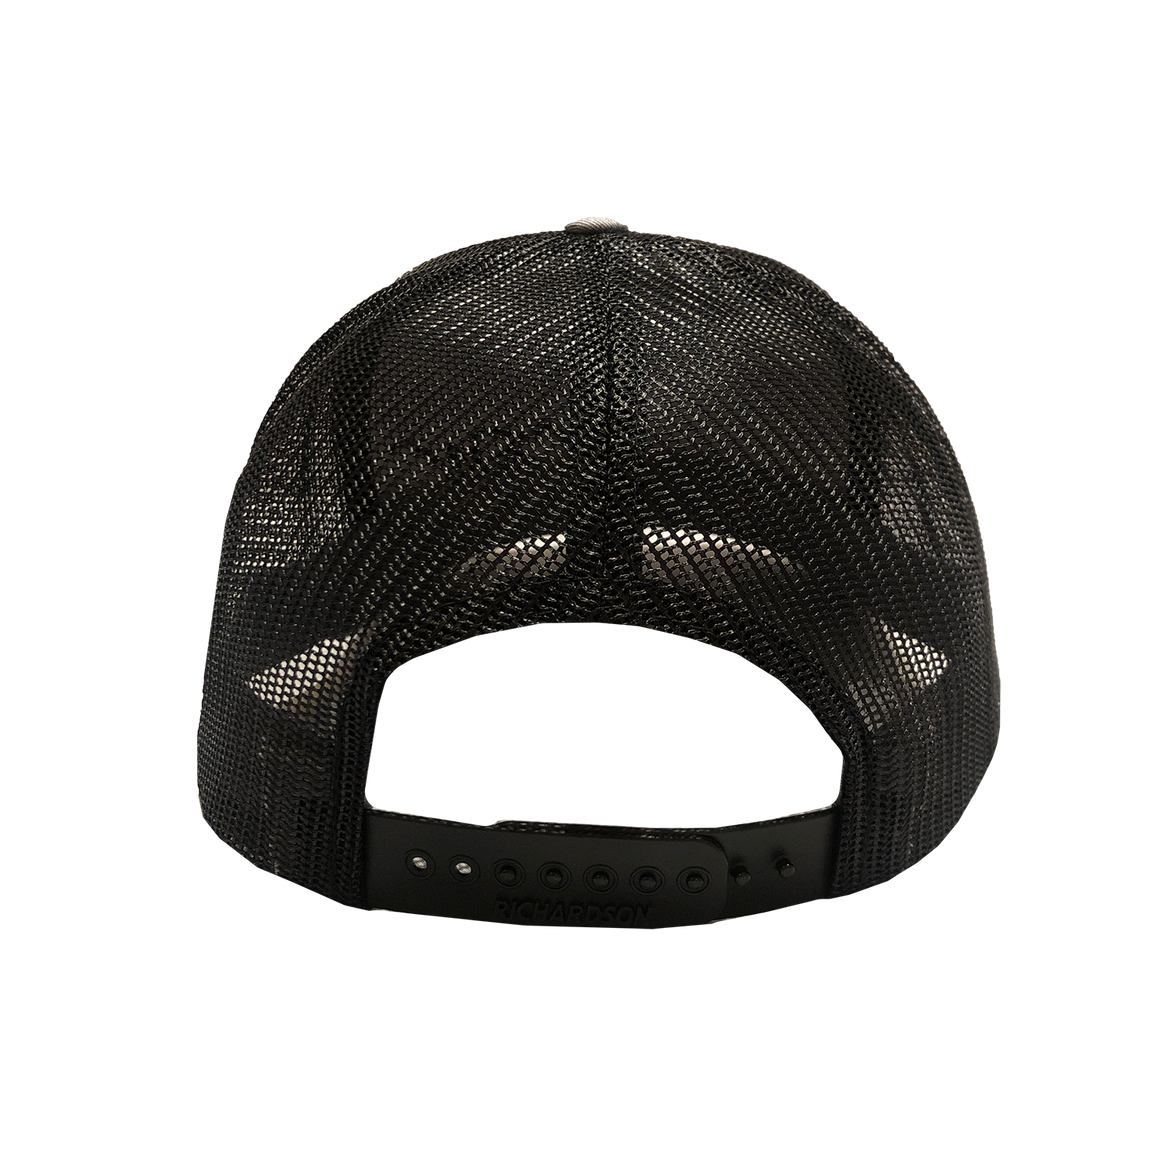 Back of gray CFW trucker cap. Sides and back are black mesh with a black adjustable band.